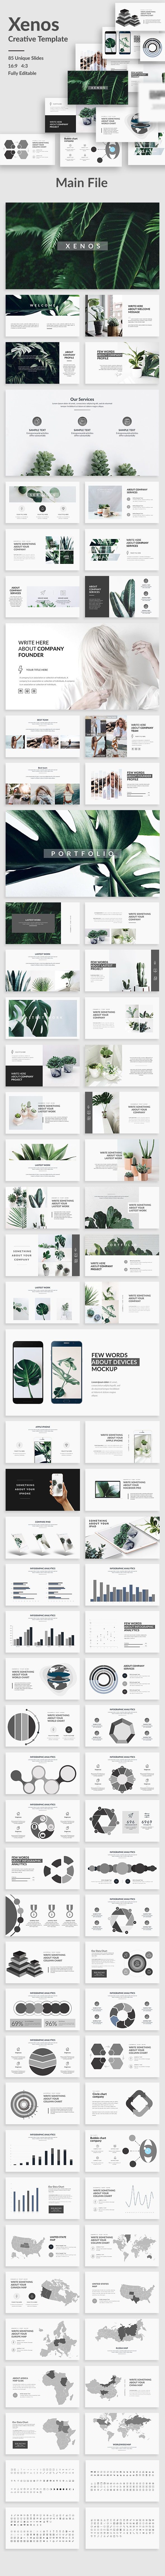 Xenos Creative Keynote Template - Creative Keynote Templates